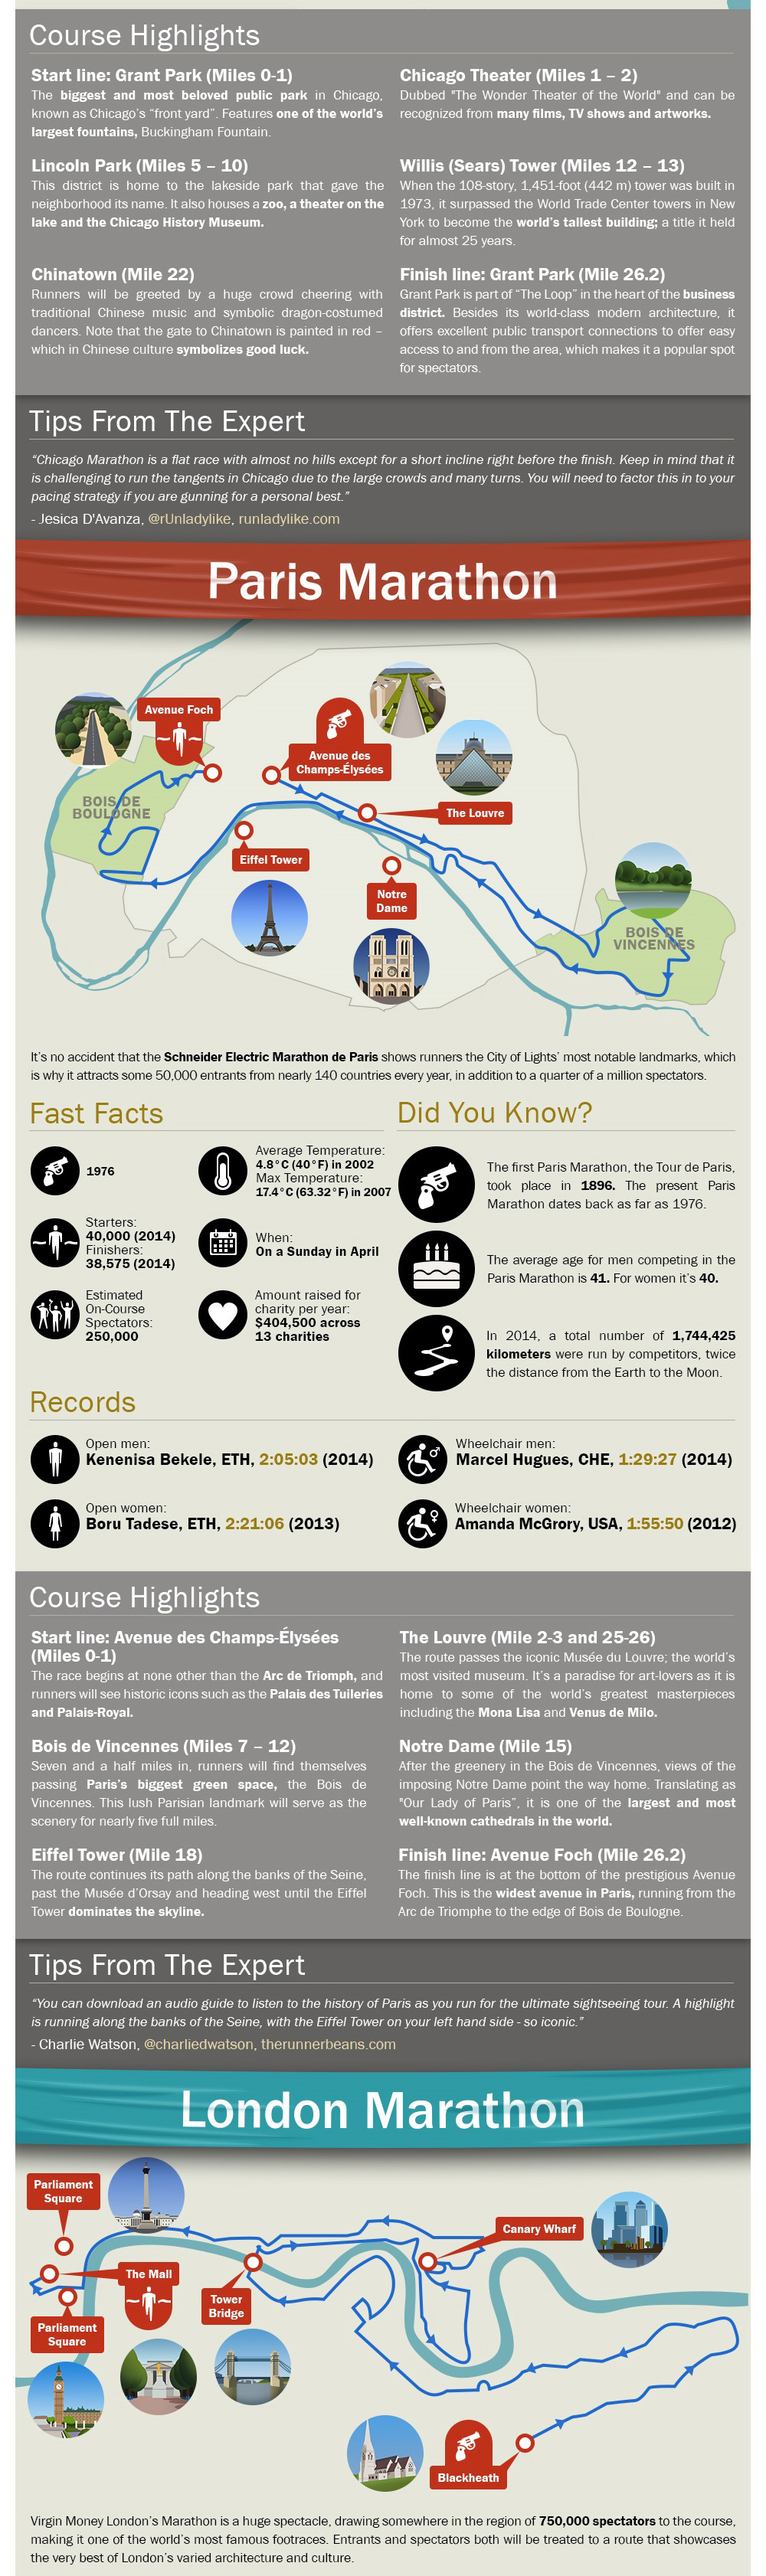 Guide to the best marathons in the world fairmont hotels